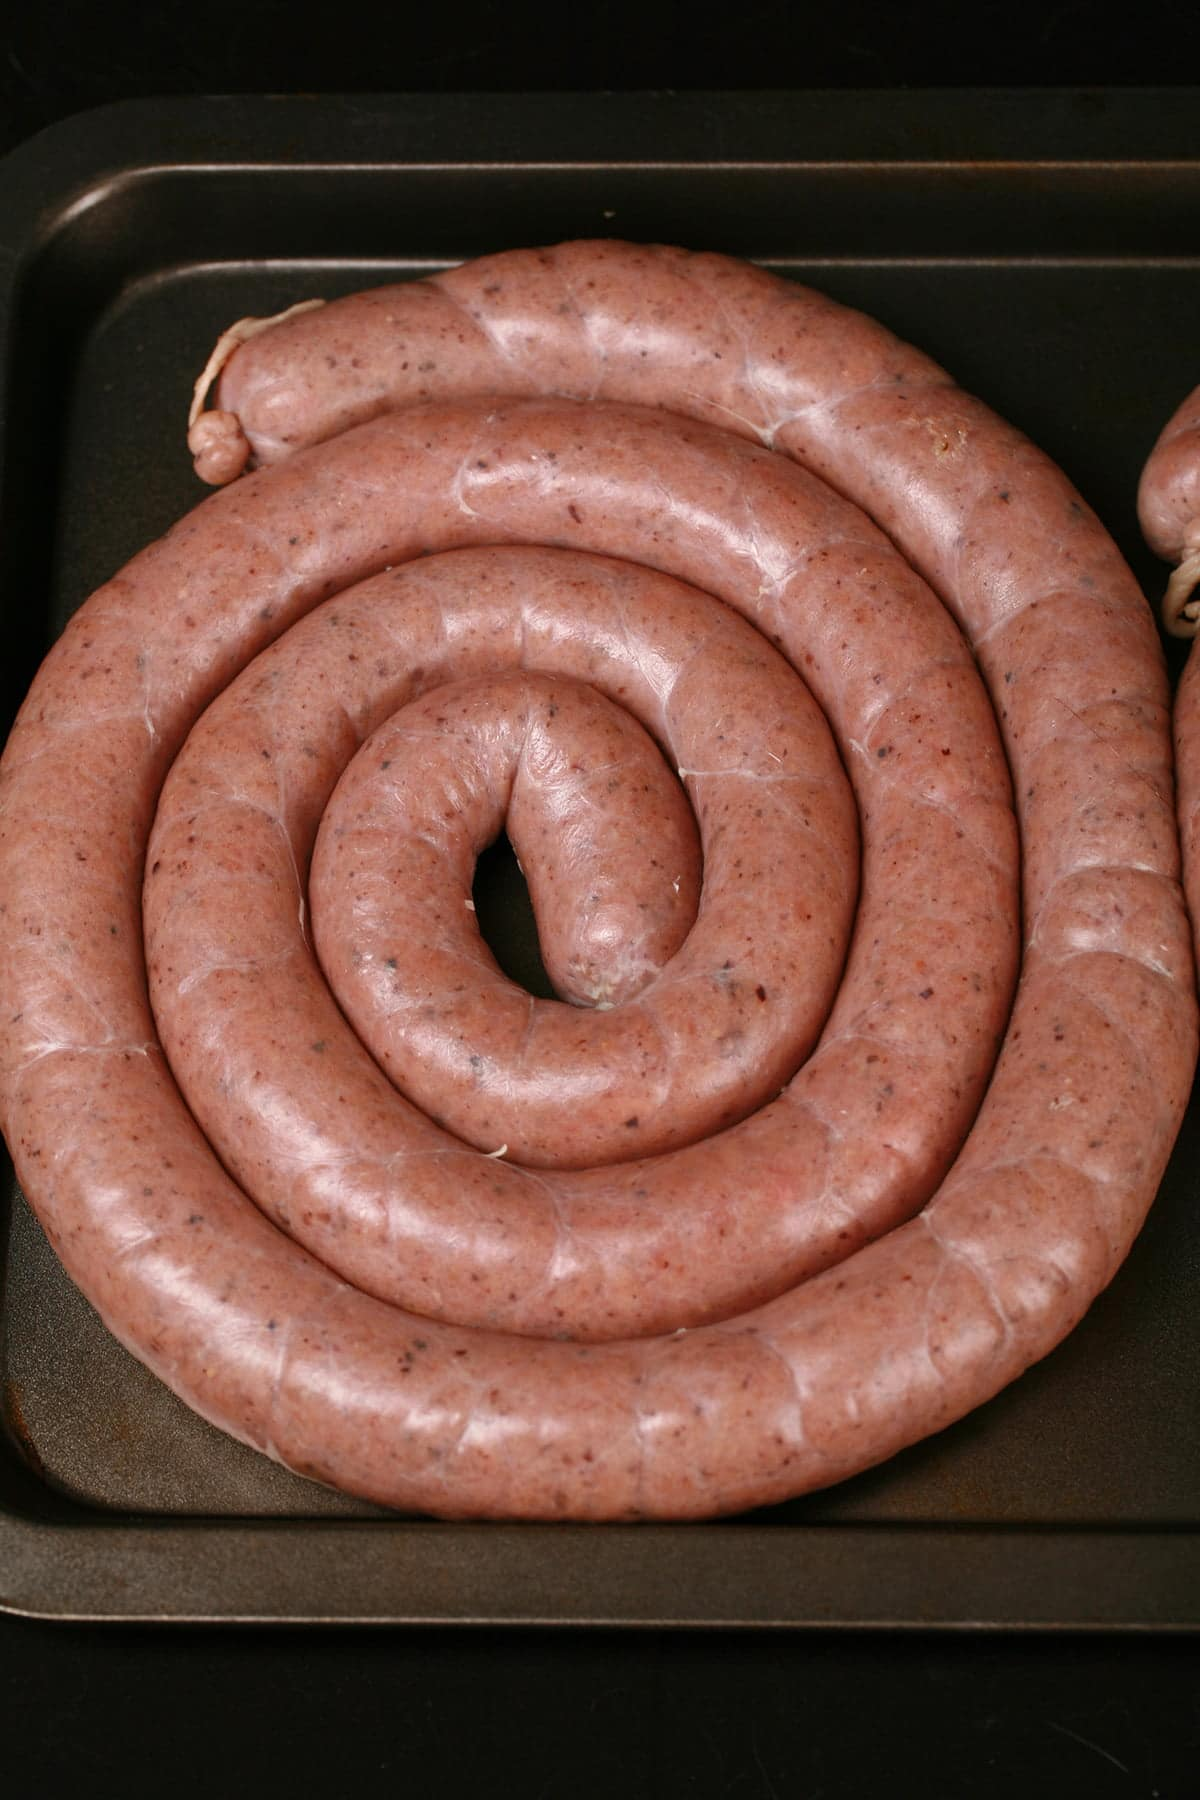 A large coil of raw sausage, on a cookie sheet.